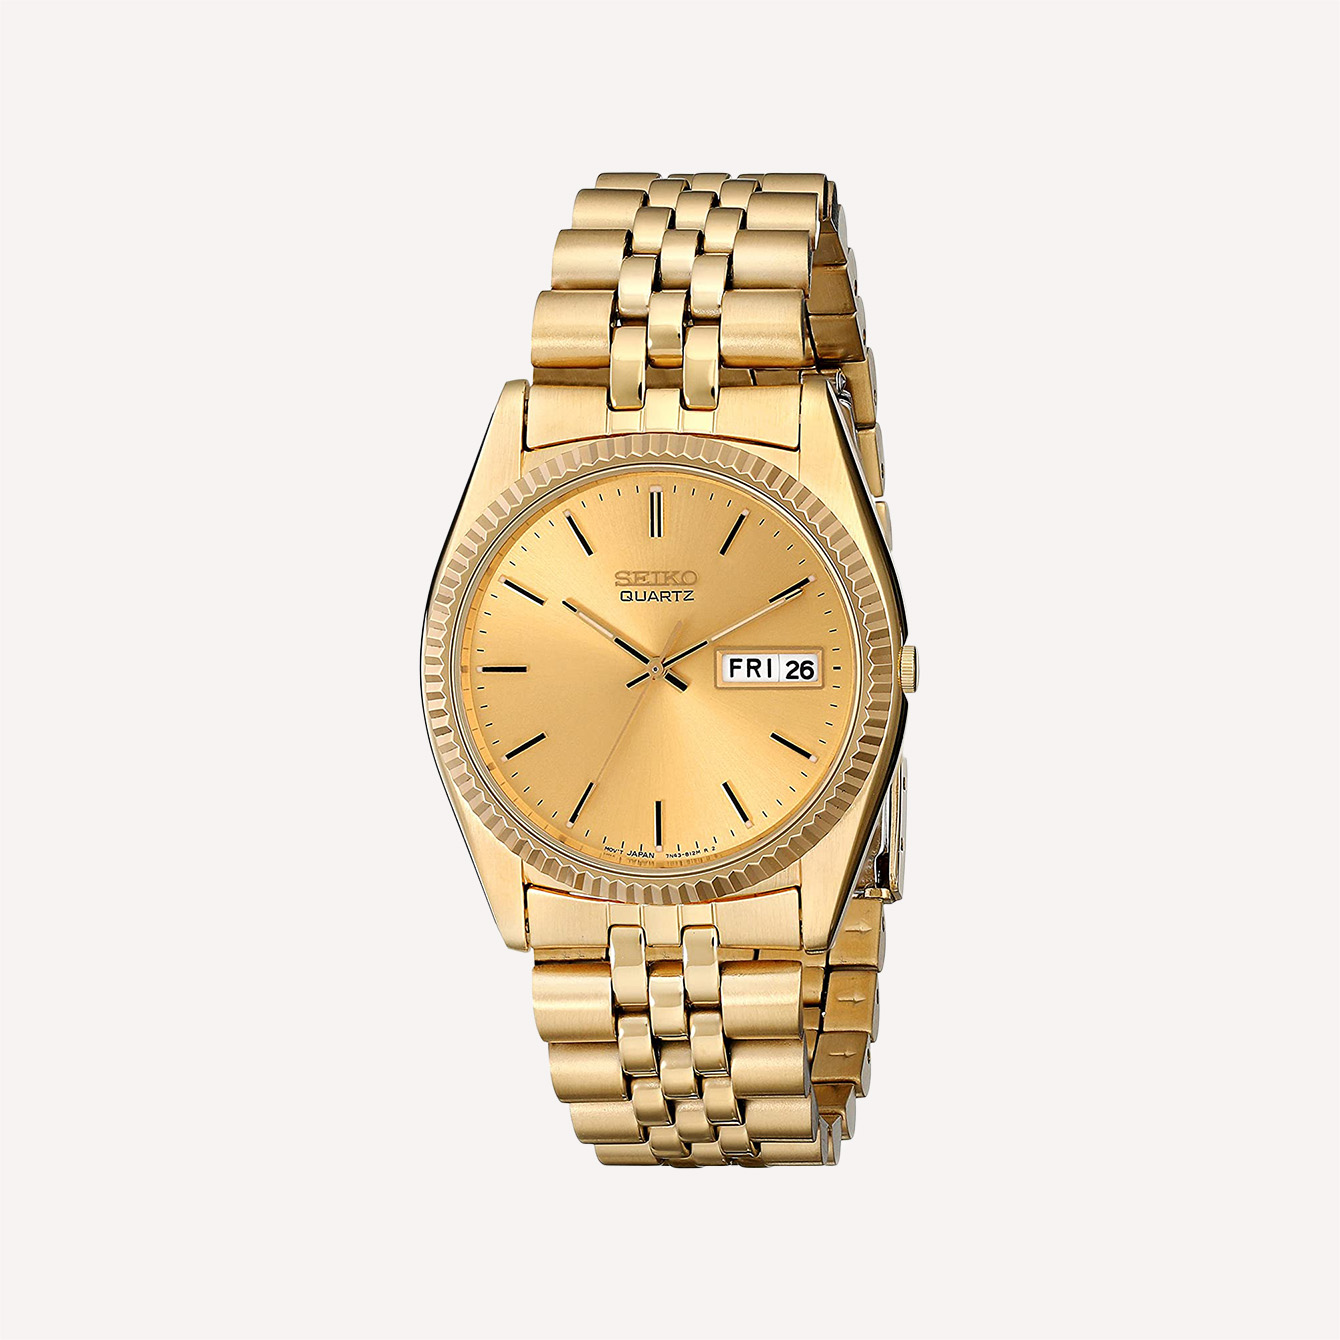 Seiko Men_s SGF206 Gold Tone Stainless Steel Dress Watch